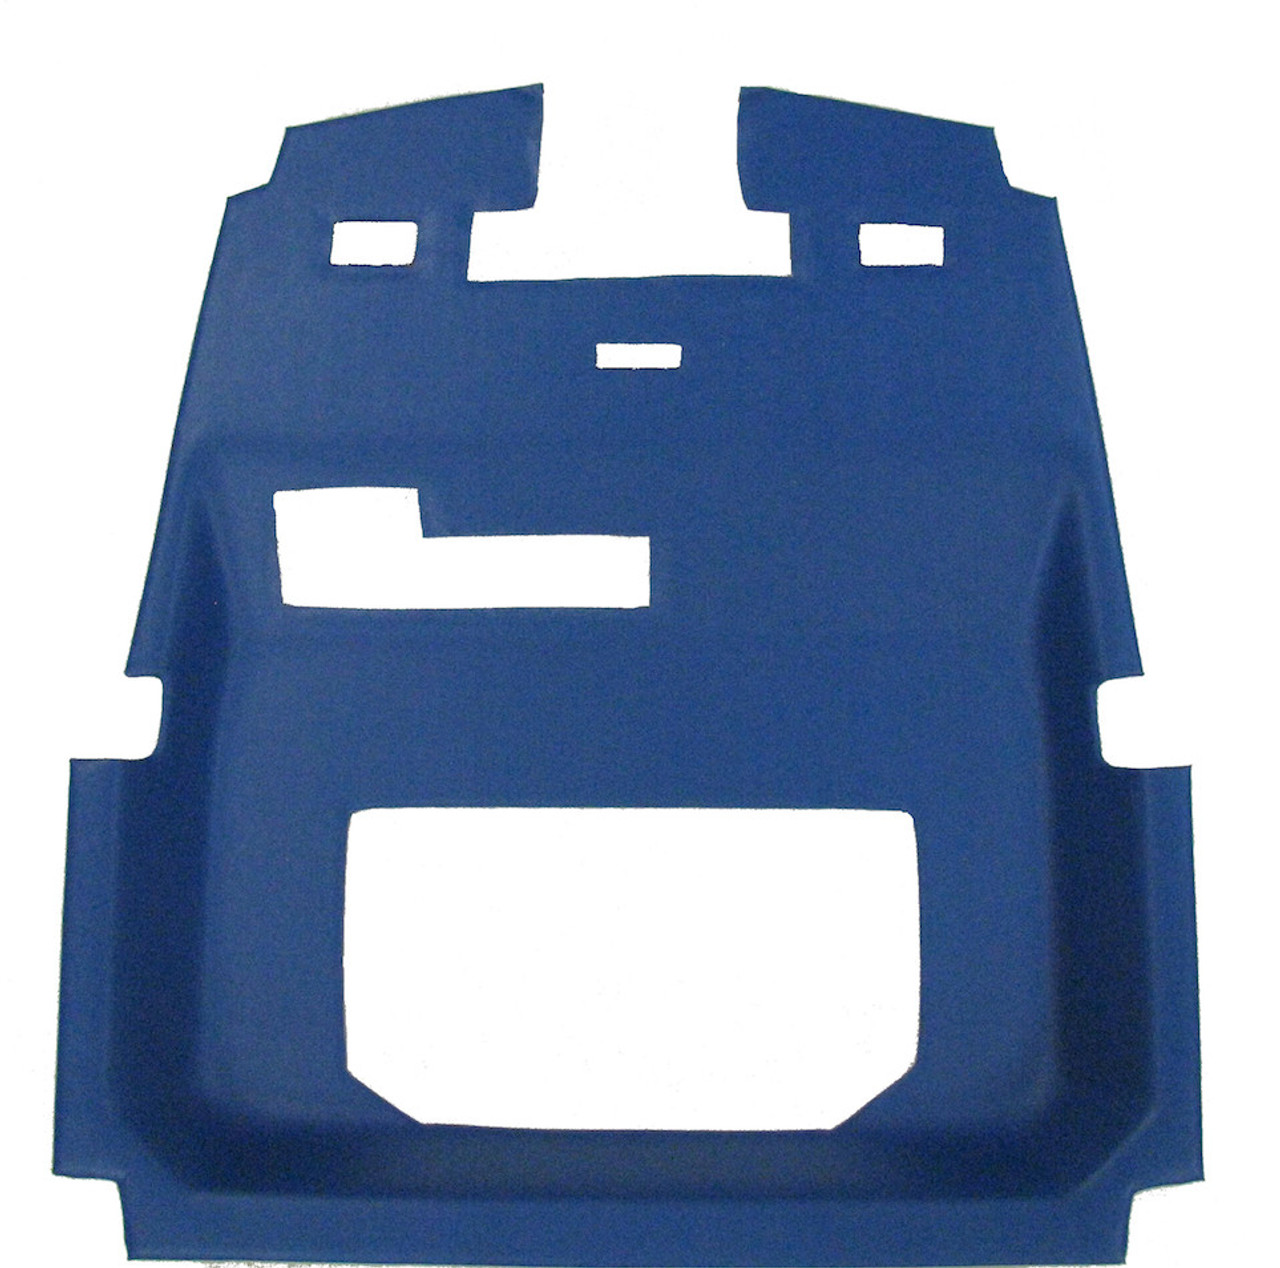 small resolution of ford 6610 tractor interior upholstery llc ford series1 headliner small 14378 1385524359 c 2 ford 6610 tractor interior upholstery llc ford 6610 fuse